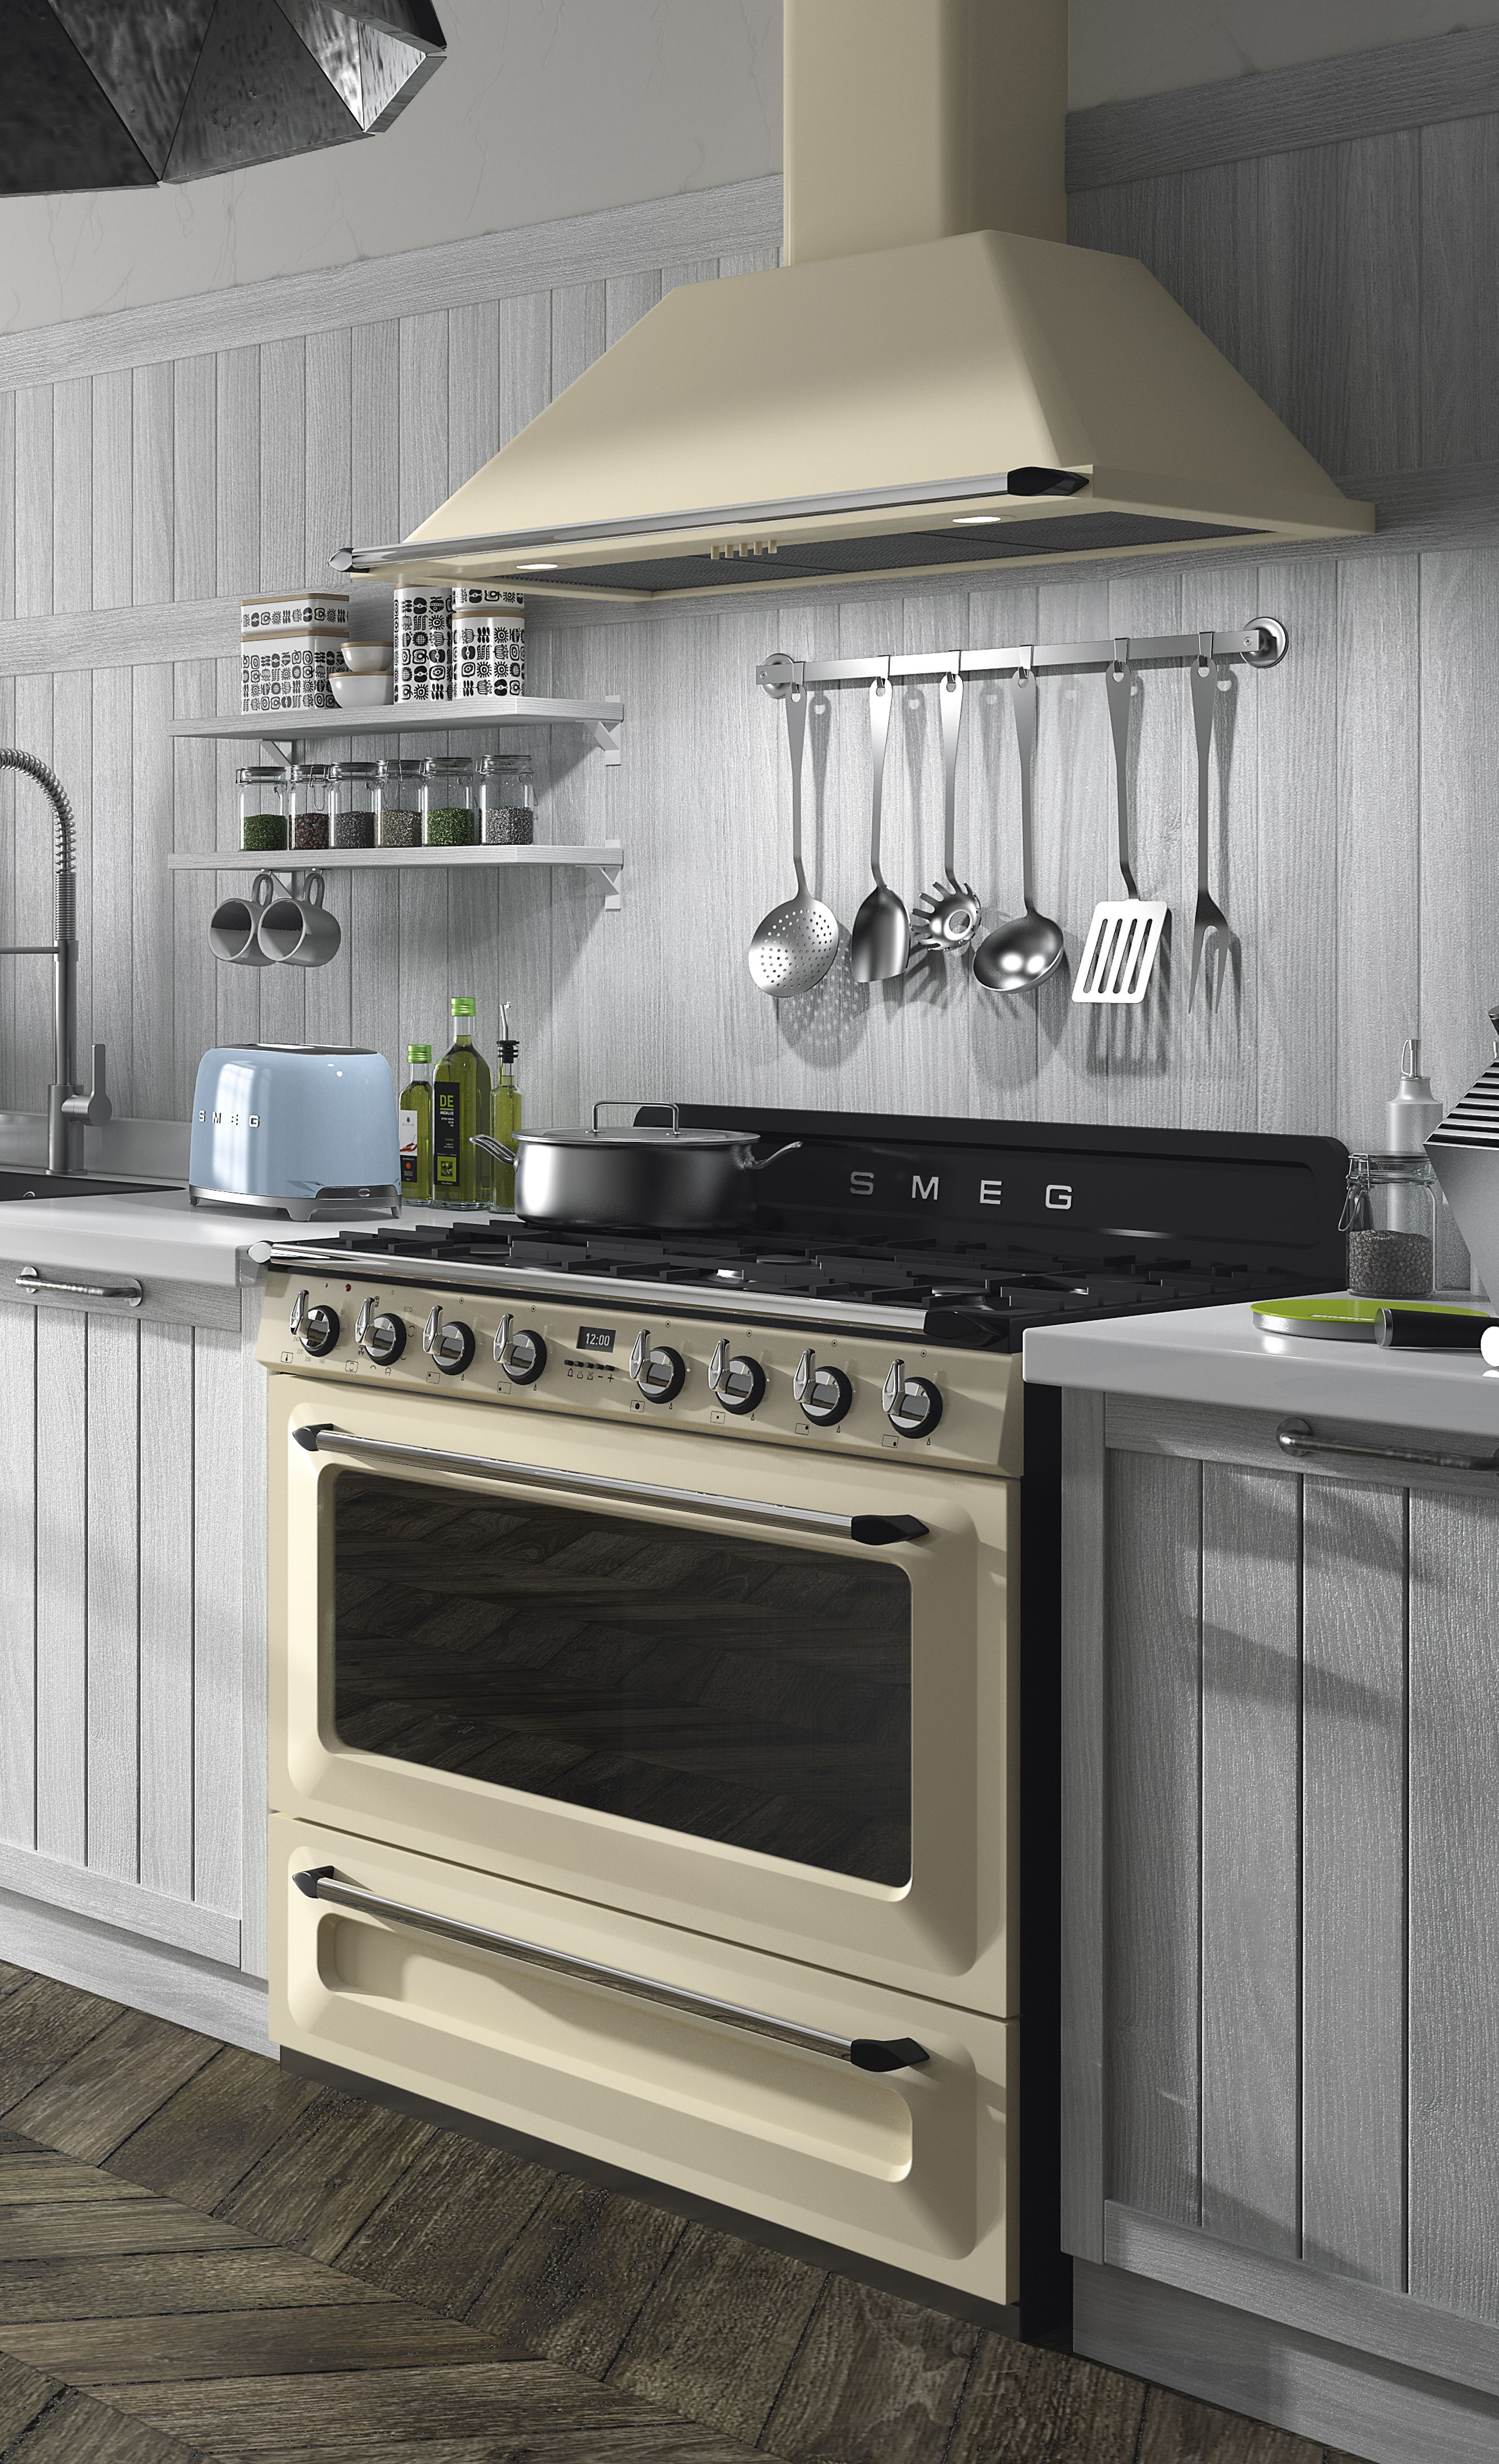 Kitchen Cabinets Victoria Smeg Cream Victoria Cooker And Hood Kitchens In 2019